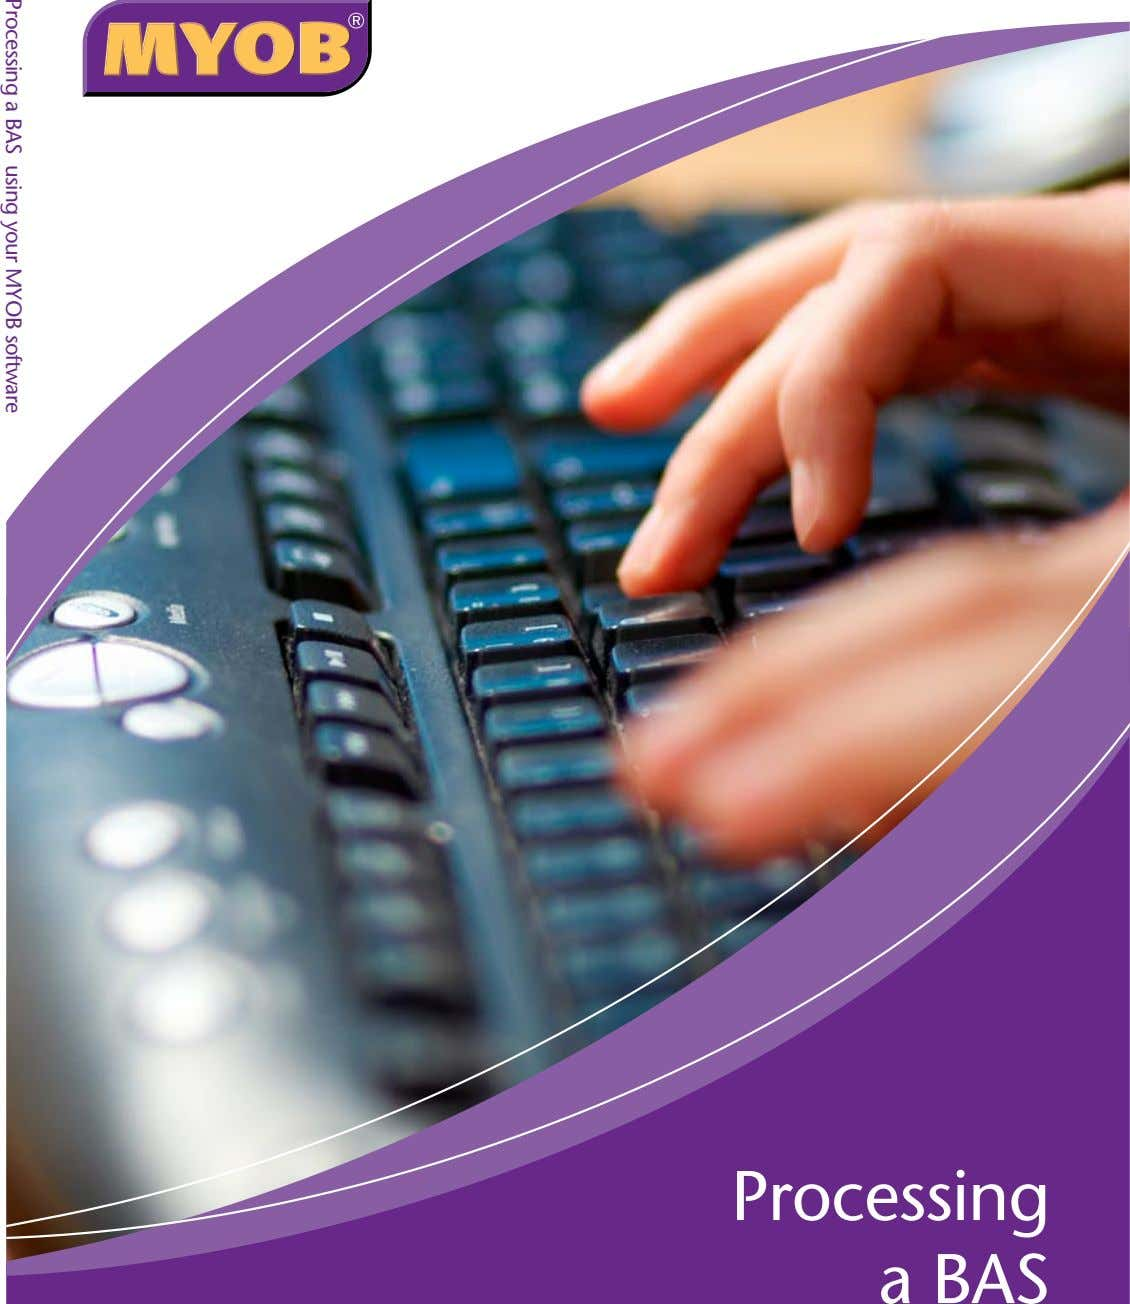 Processing a BAS Processing a BAS using your MYOB software